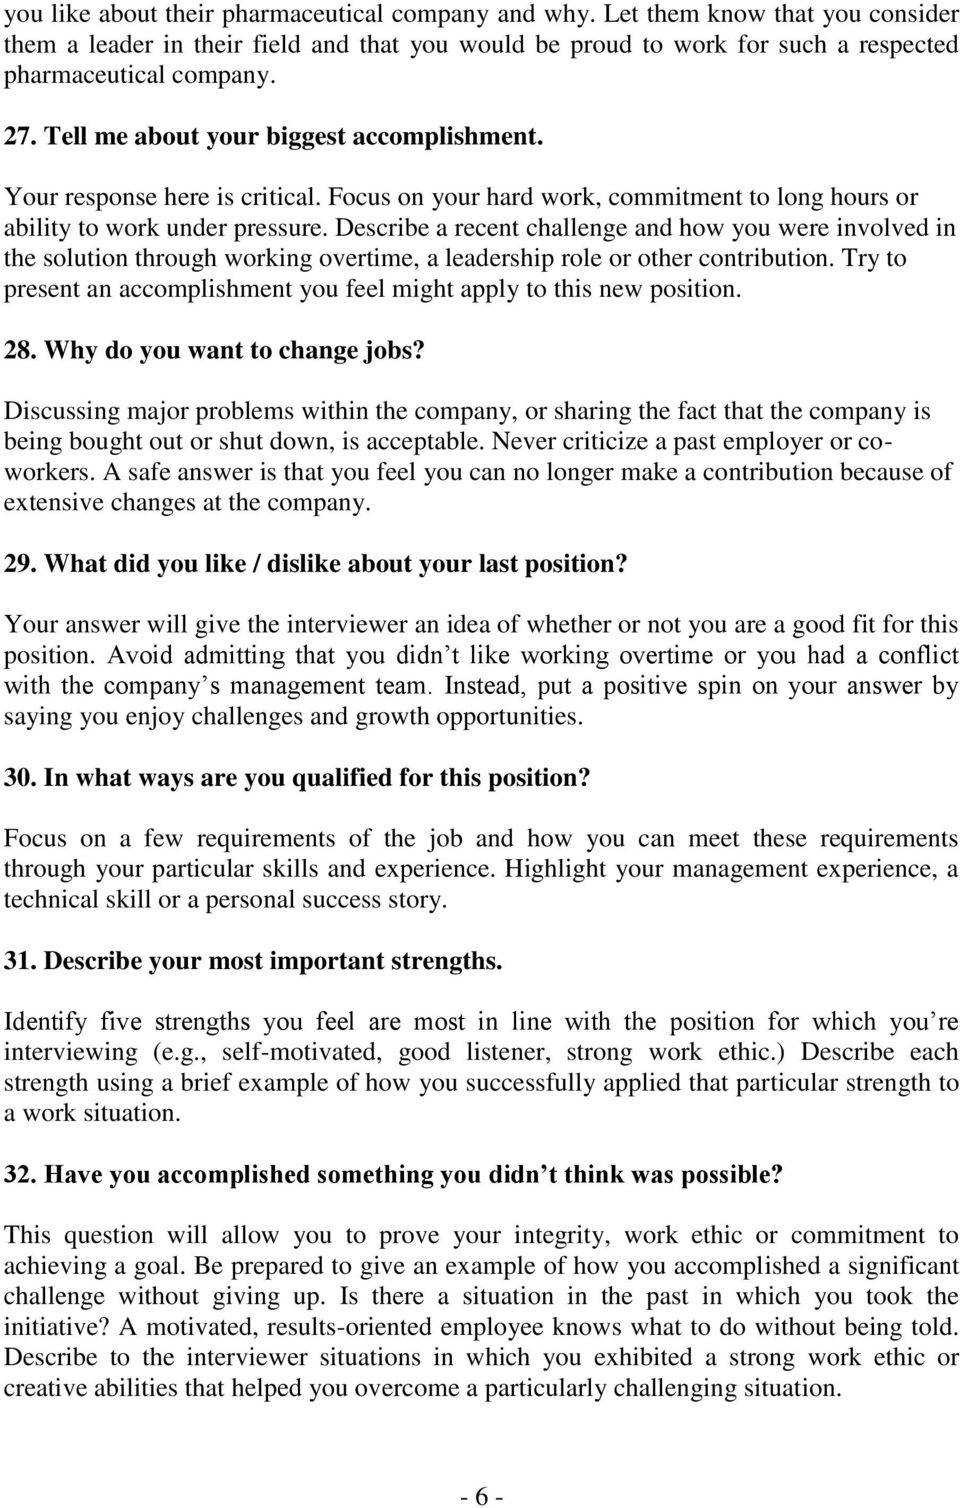 interview questions and answers pdf describe a recent challenge and how you were involved in the solution through working overtime